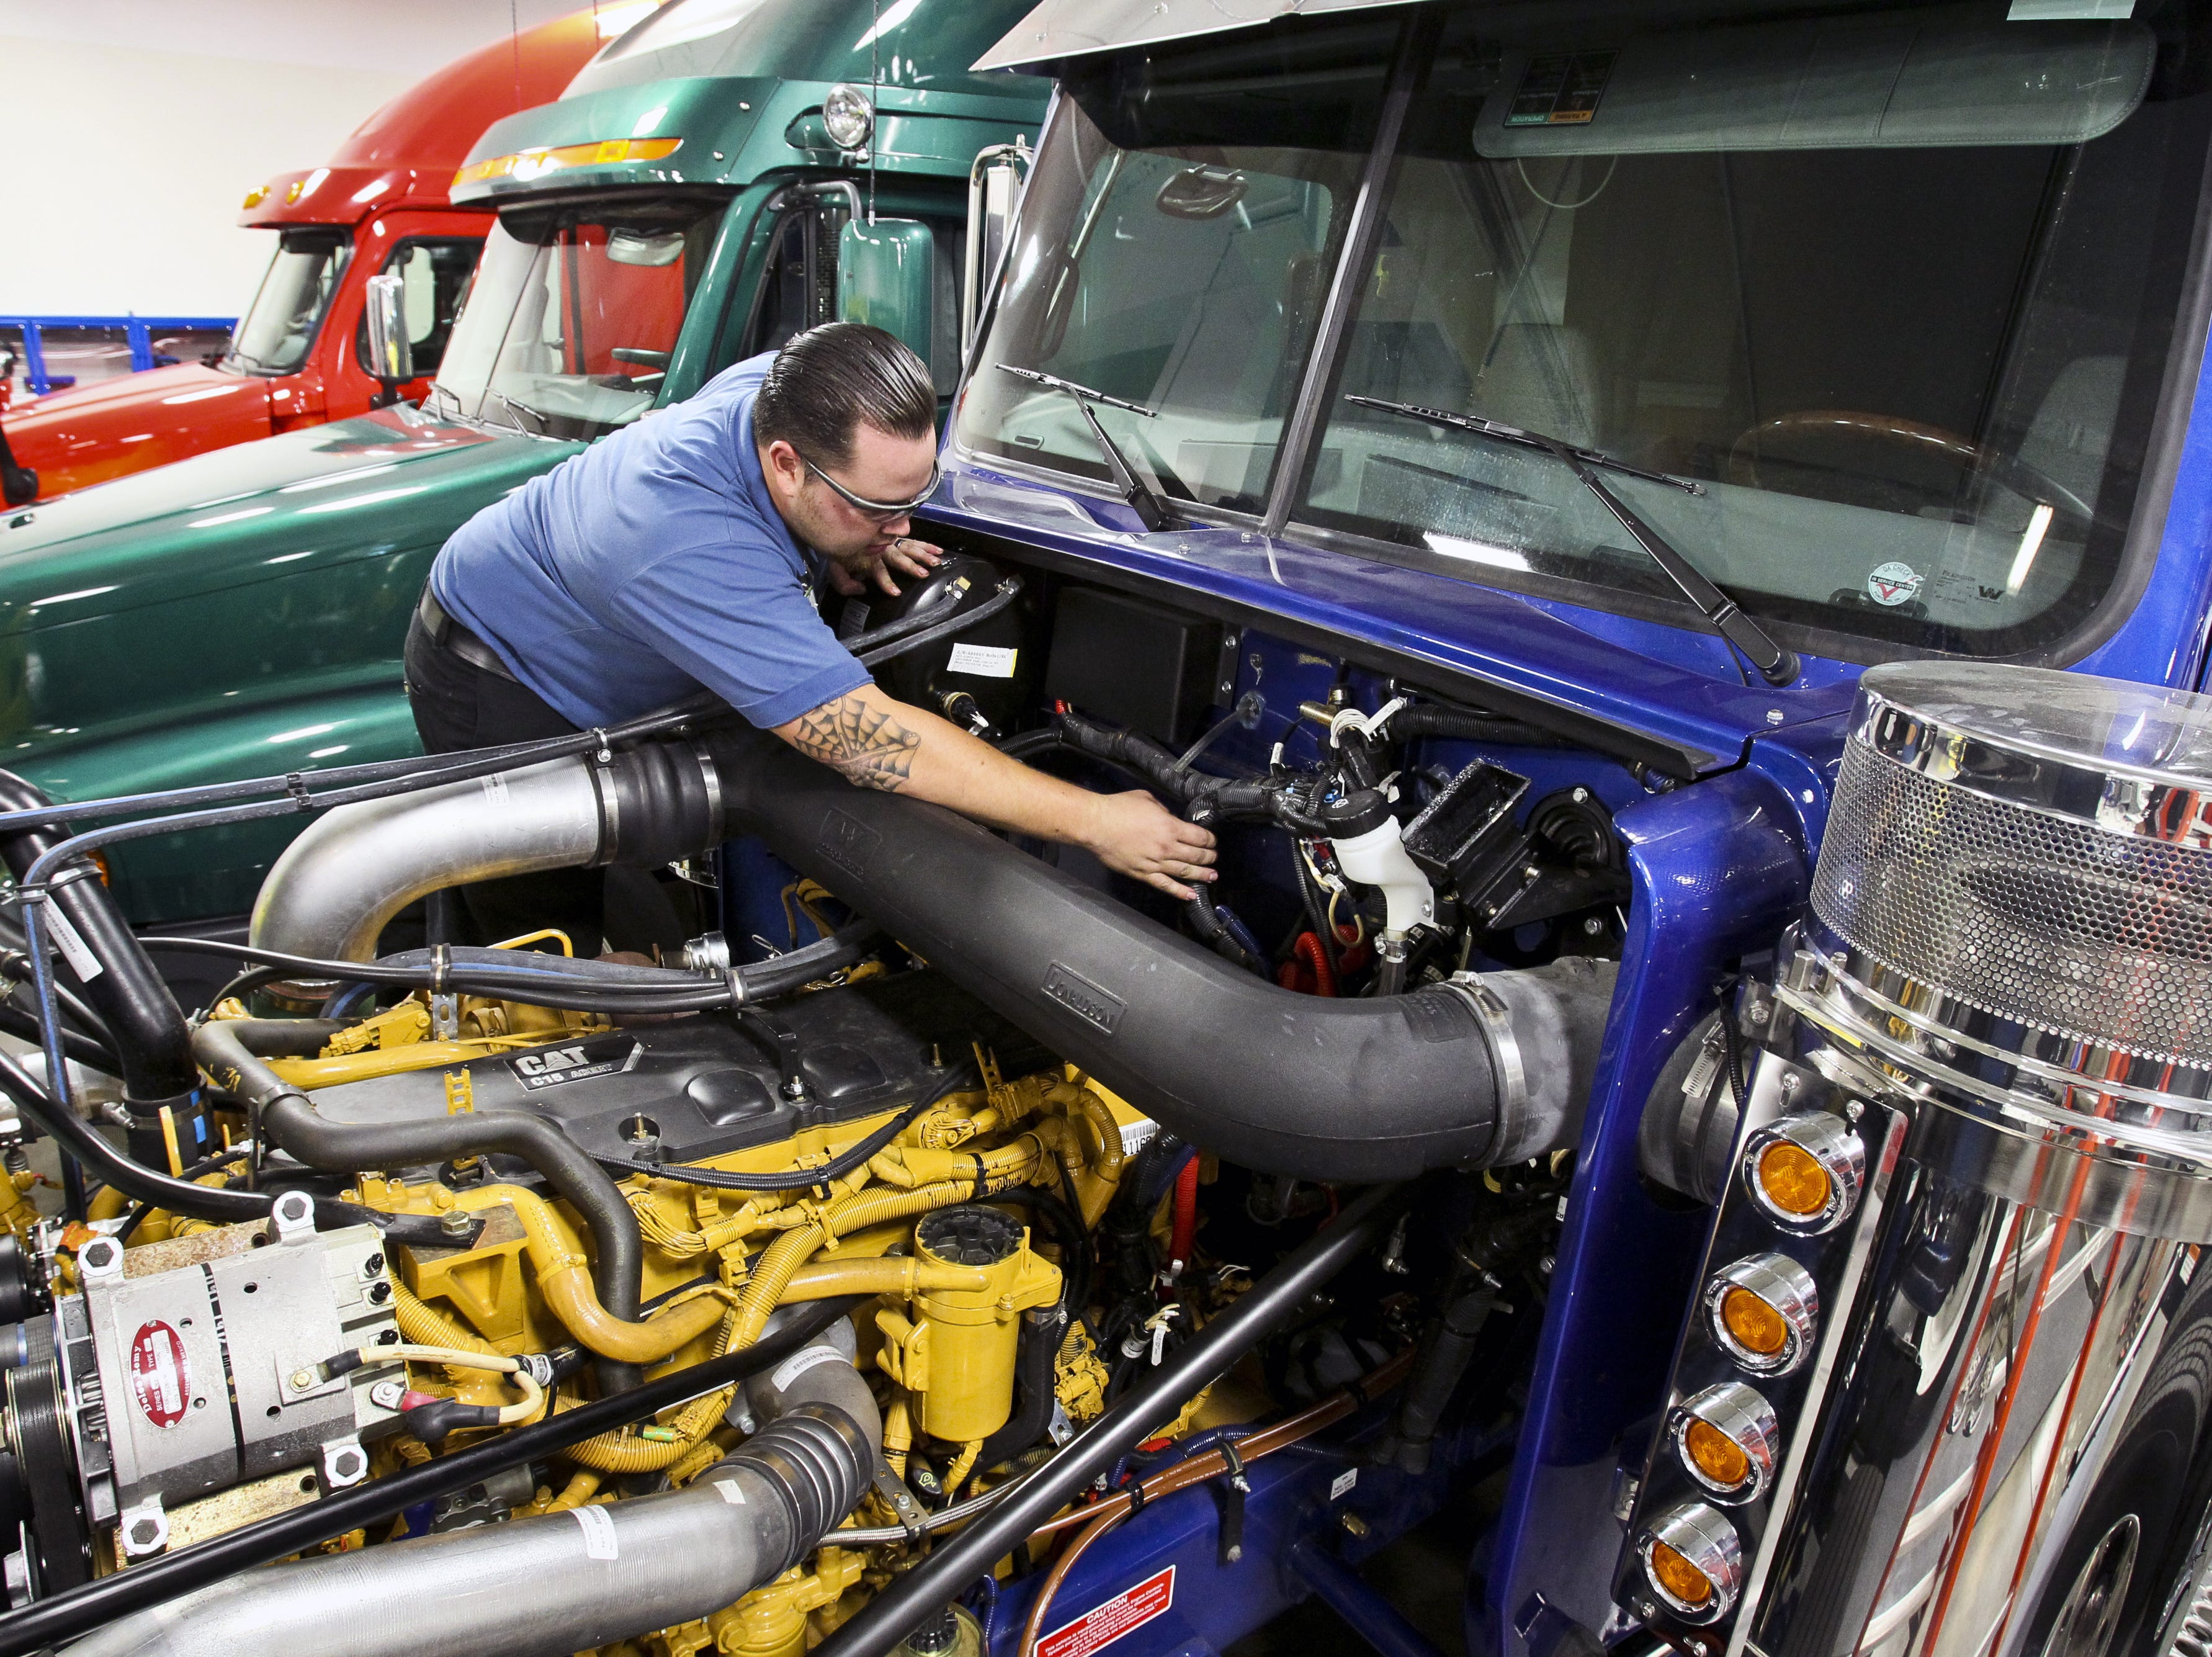 Michael Jager of Surprise learns to diagnose problems in and repair Freightliner, Sterling and Western Star trucks at the Universal Technical Institute in Avondale on Aug. 3, 2010.